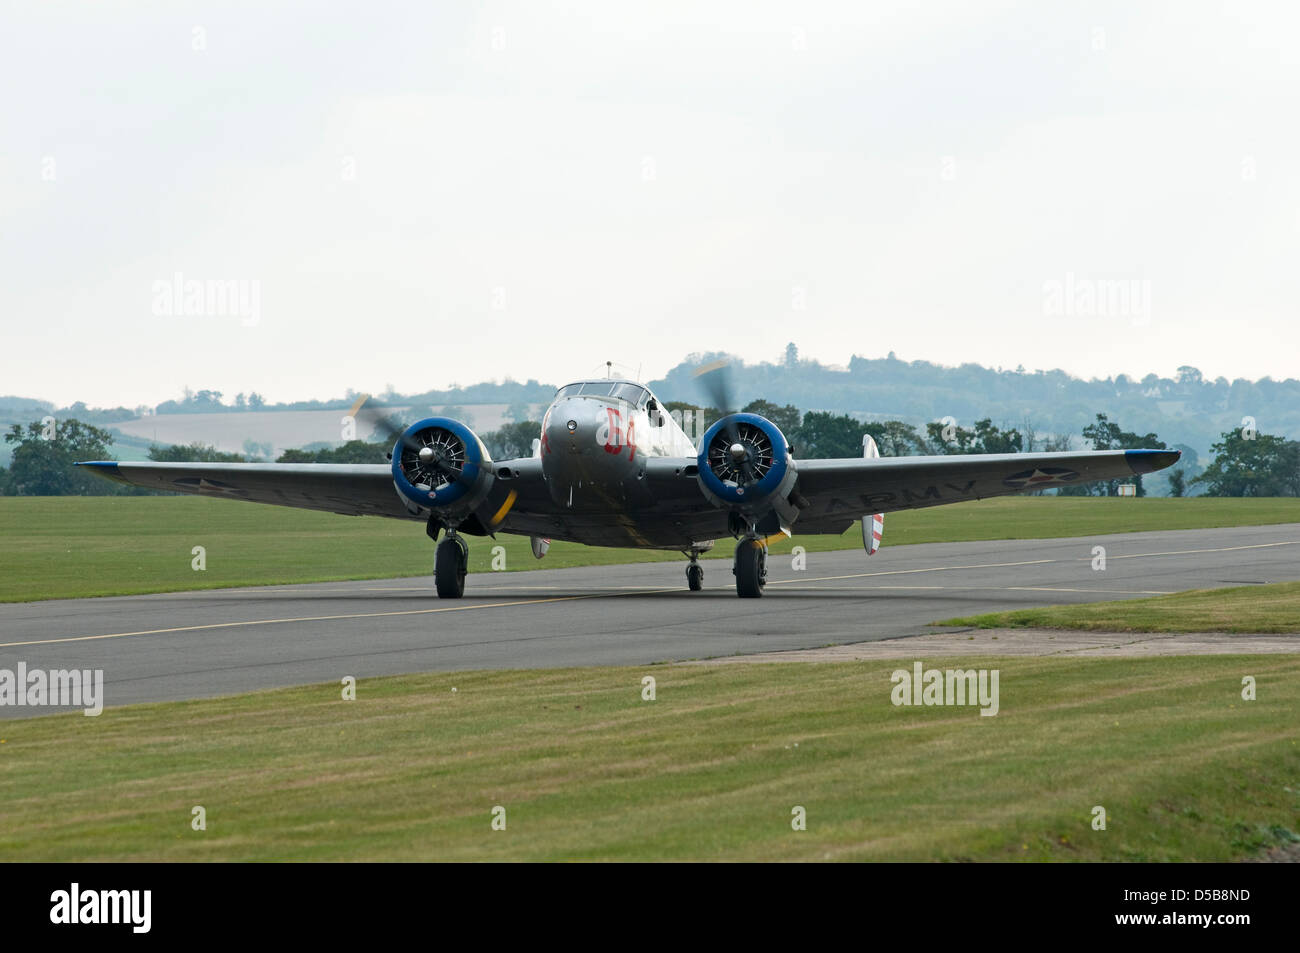 A vintage twin engined Beech 18 aircraft taxying along an airfield runway. - Stock Image